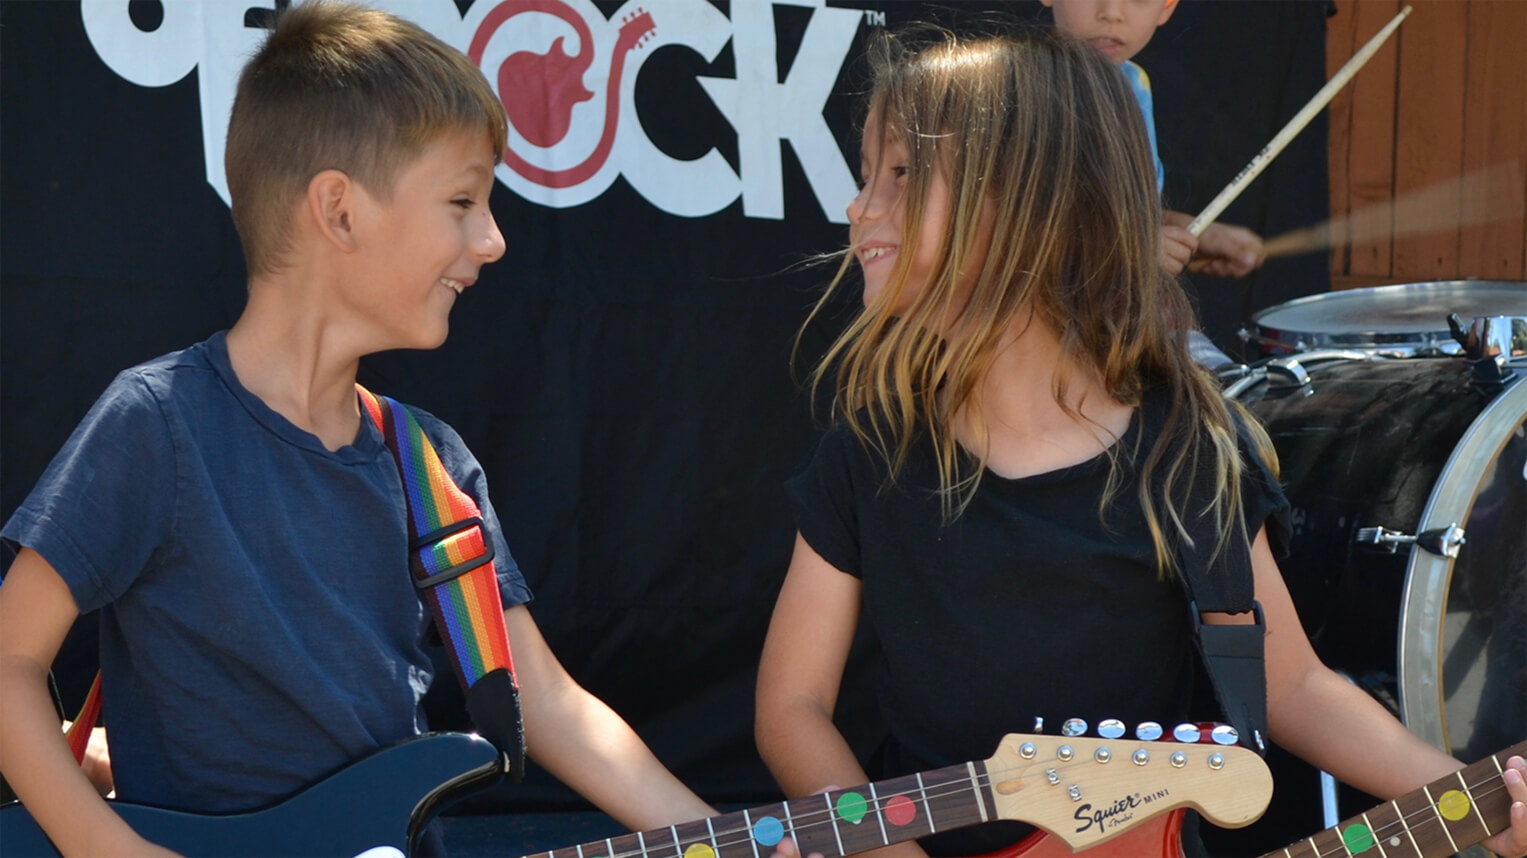 summer camp, guitar lessons, bass lessons, no experience needed, drum lessons, guitarists looking at each other, rock out on stage, kid playing guitar